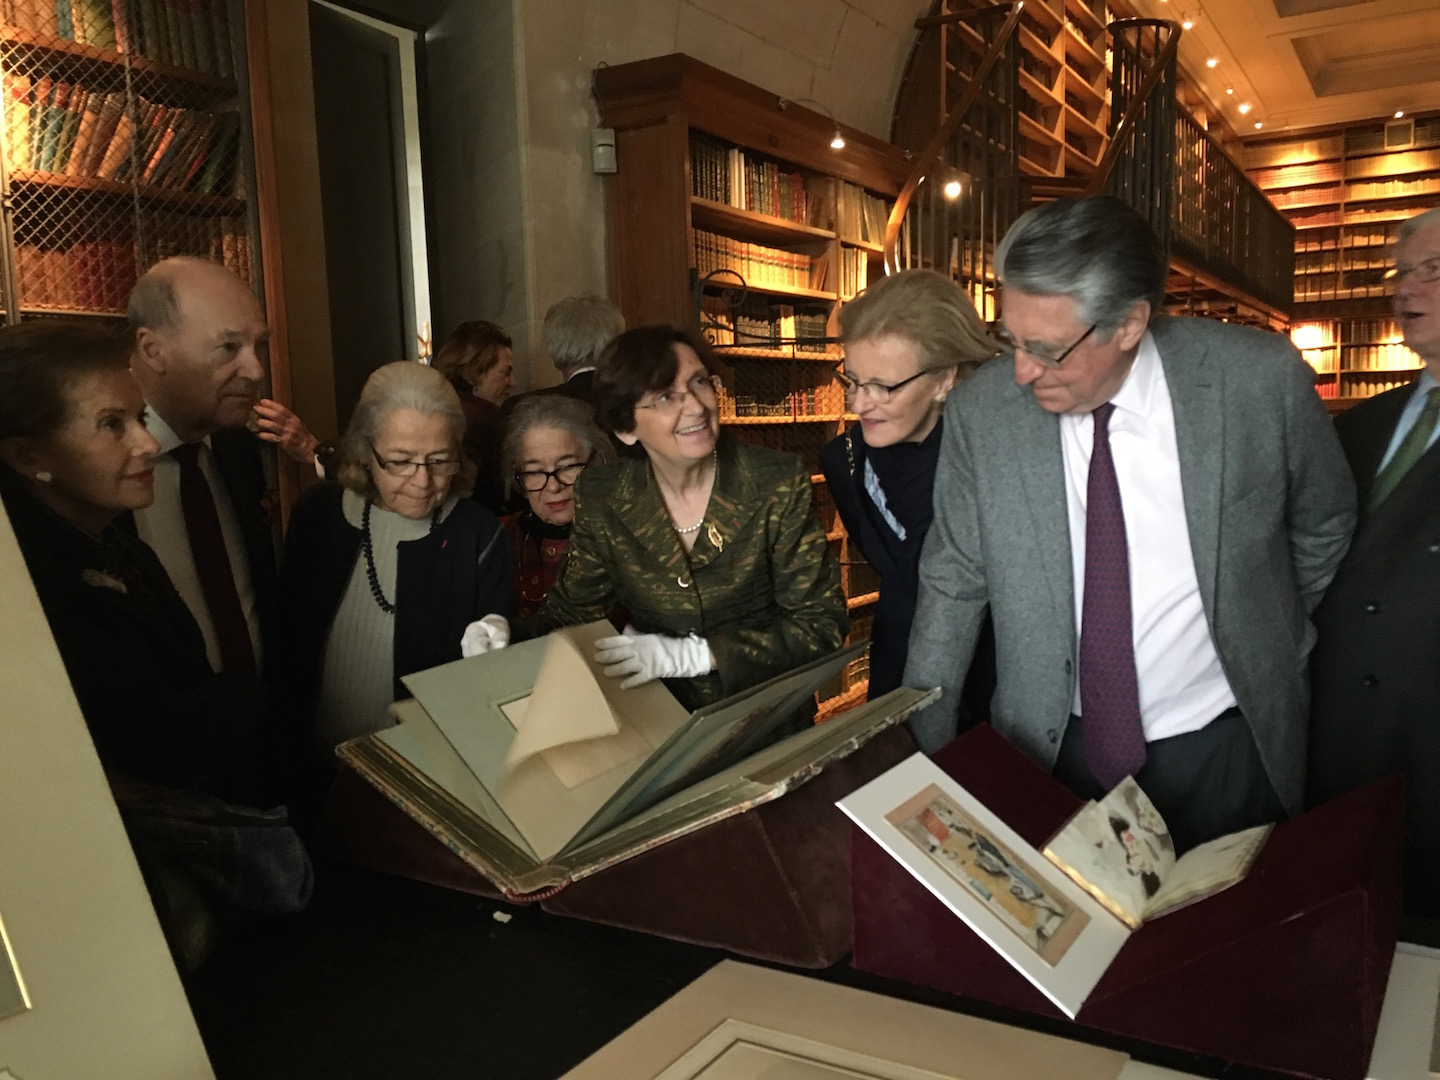 Nicole Garnier, curator in charge of the Musée Condé, sharing drawings with guests in the Bibliothèque du Théâtre, the Duke d'Aumale's private study (L to R: Marie-France Pochna, Prince Amyn Aga Khan, Nicole Salinger, Garance Aufaure, Nicole Garnier, Baronne Antoinette Seillière, Baron Ernest-Antoine Seillière, and Vicomte Olivier de Rohan)